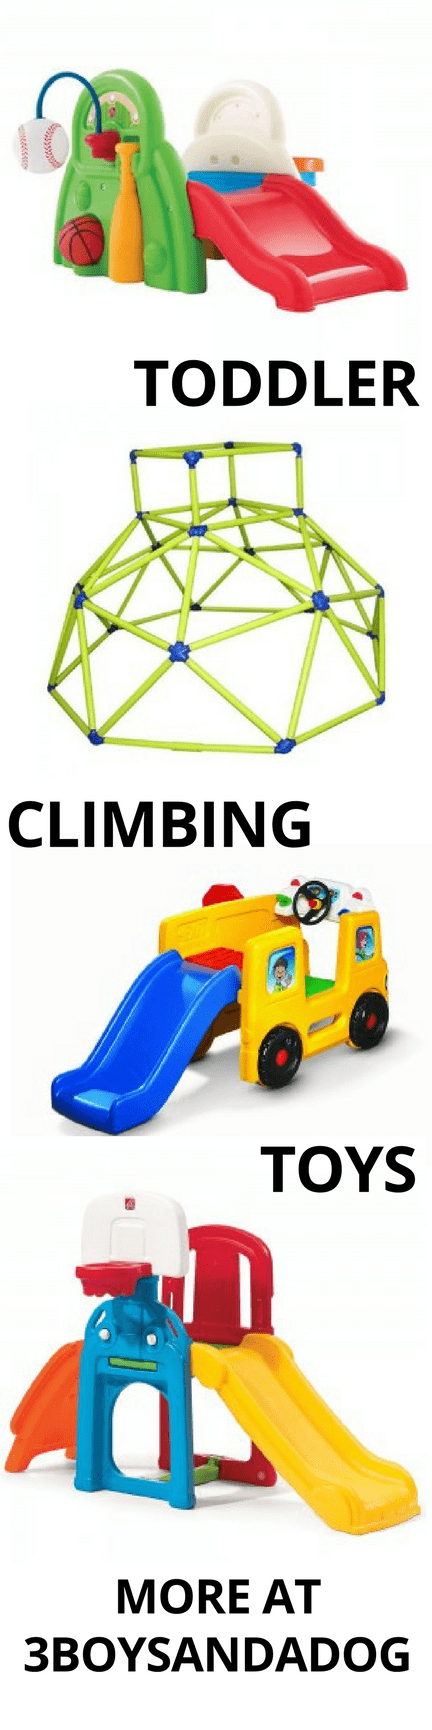 These toddler climbing toys are kid-tested and mother approved from great companies like Step2, Little Tykes, & Fisher Price!  These toys for toddlers who climb are perfect for indoor and outdoor climbing.